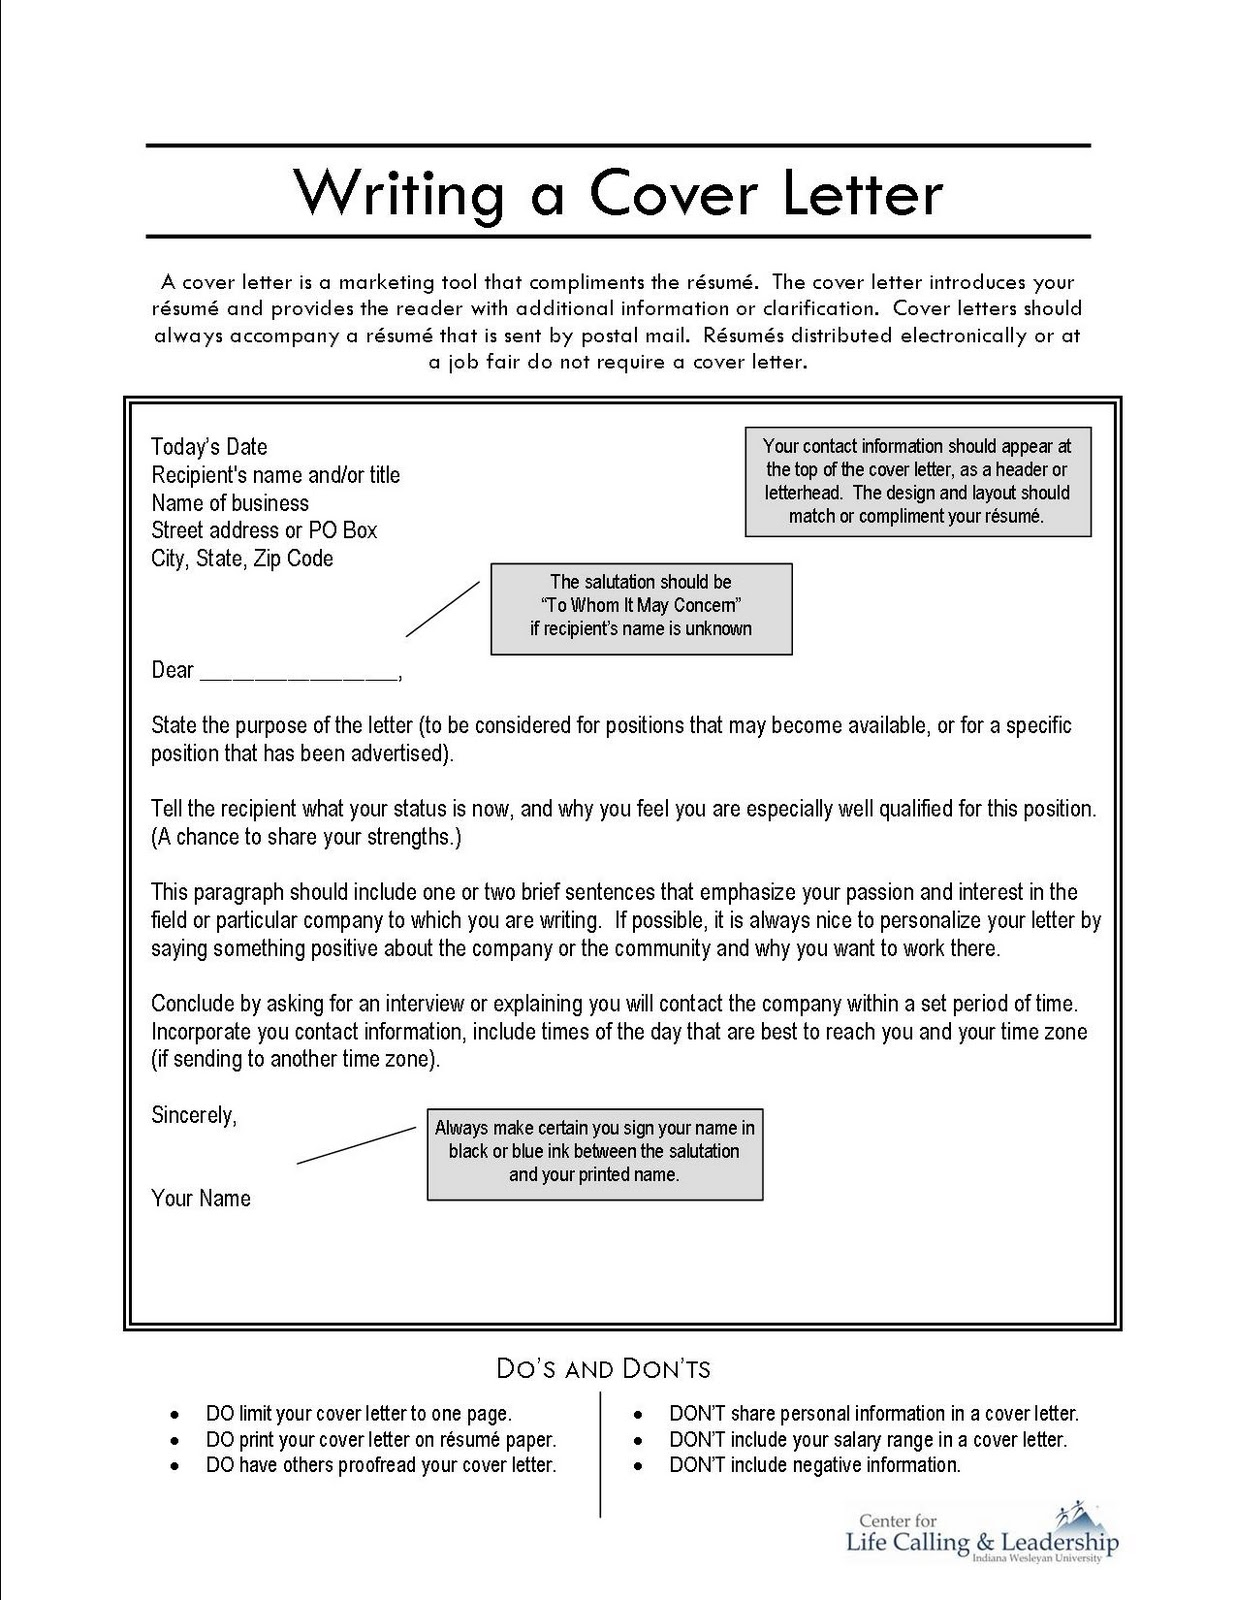 cheap cover letter writer website for phd custom brew tours ninfa project